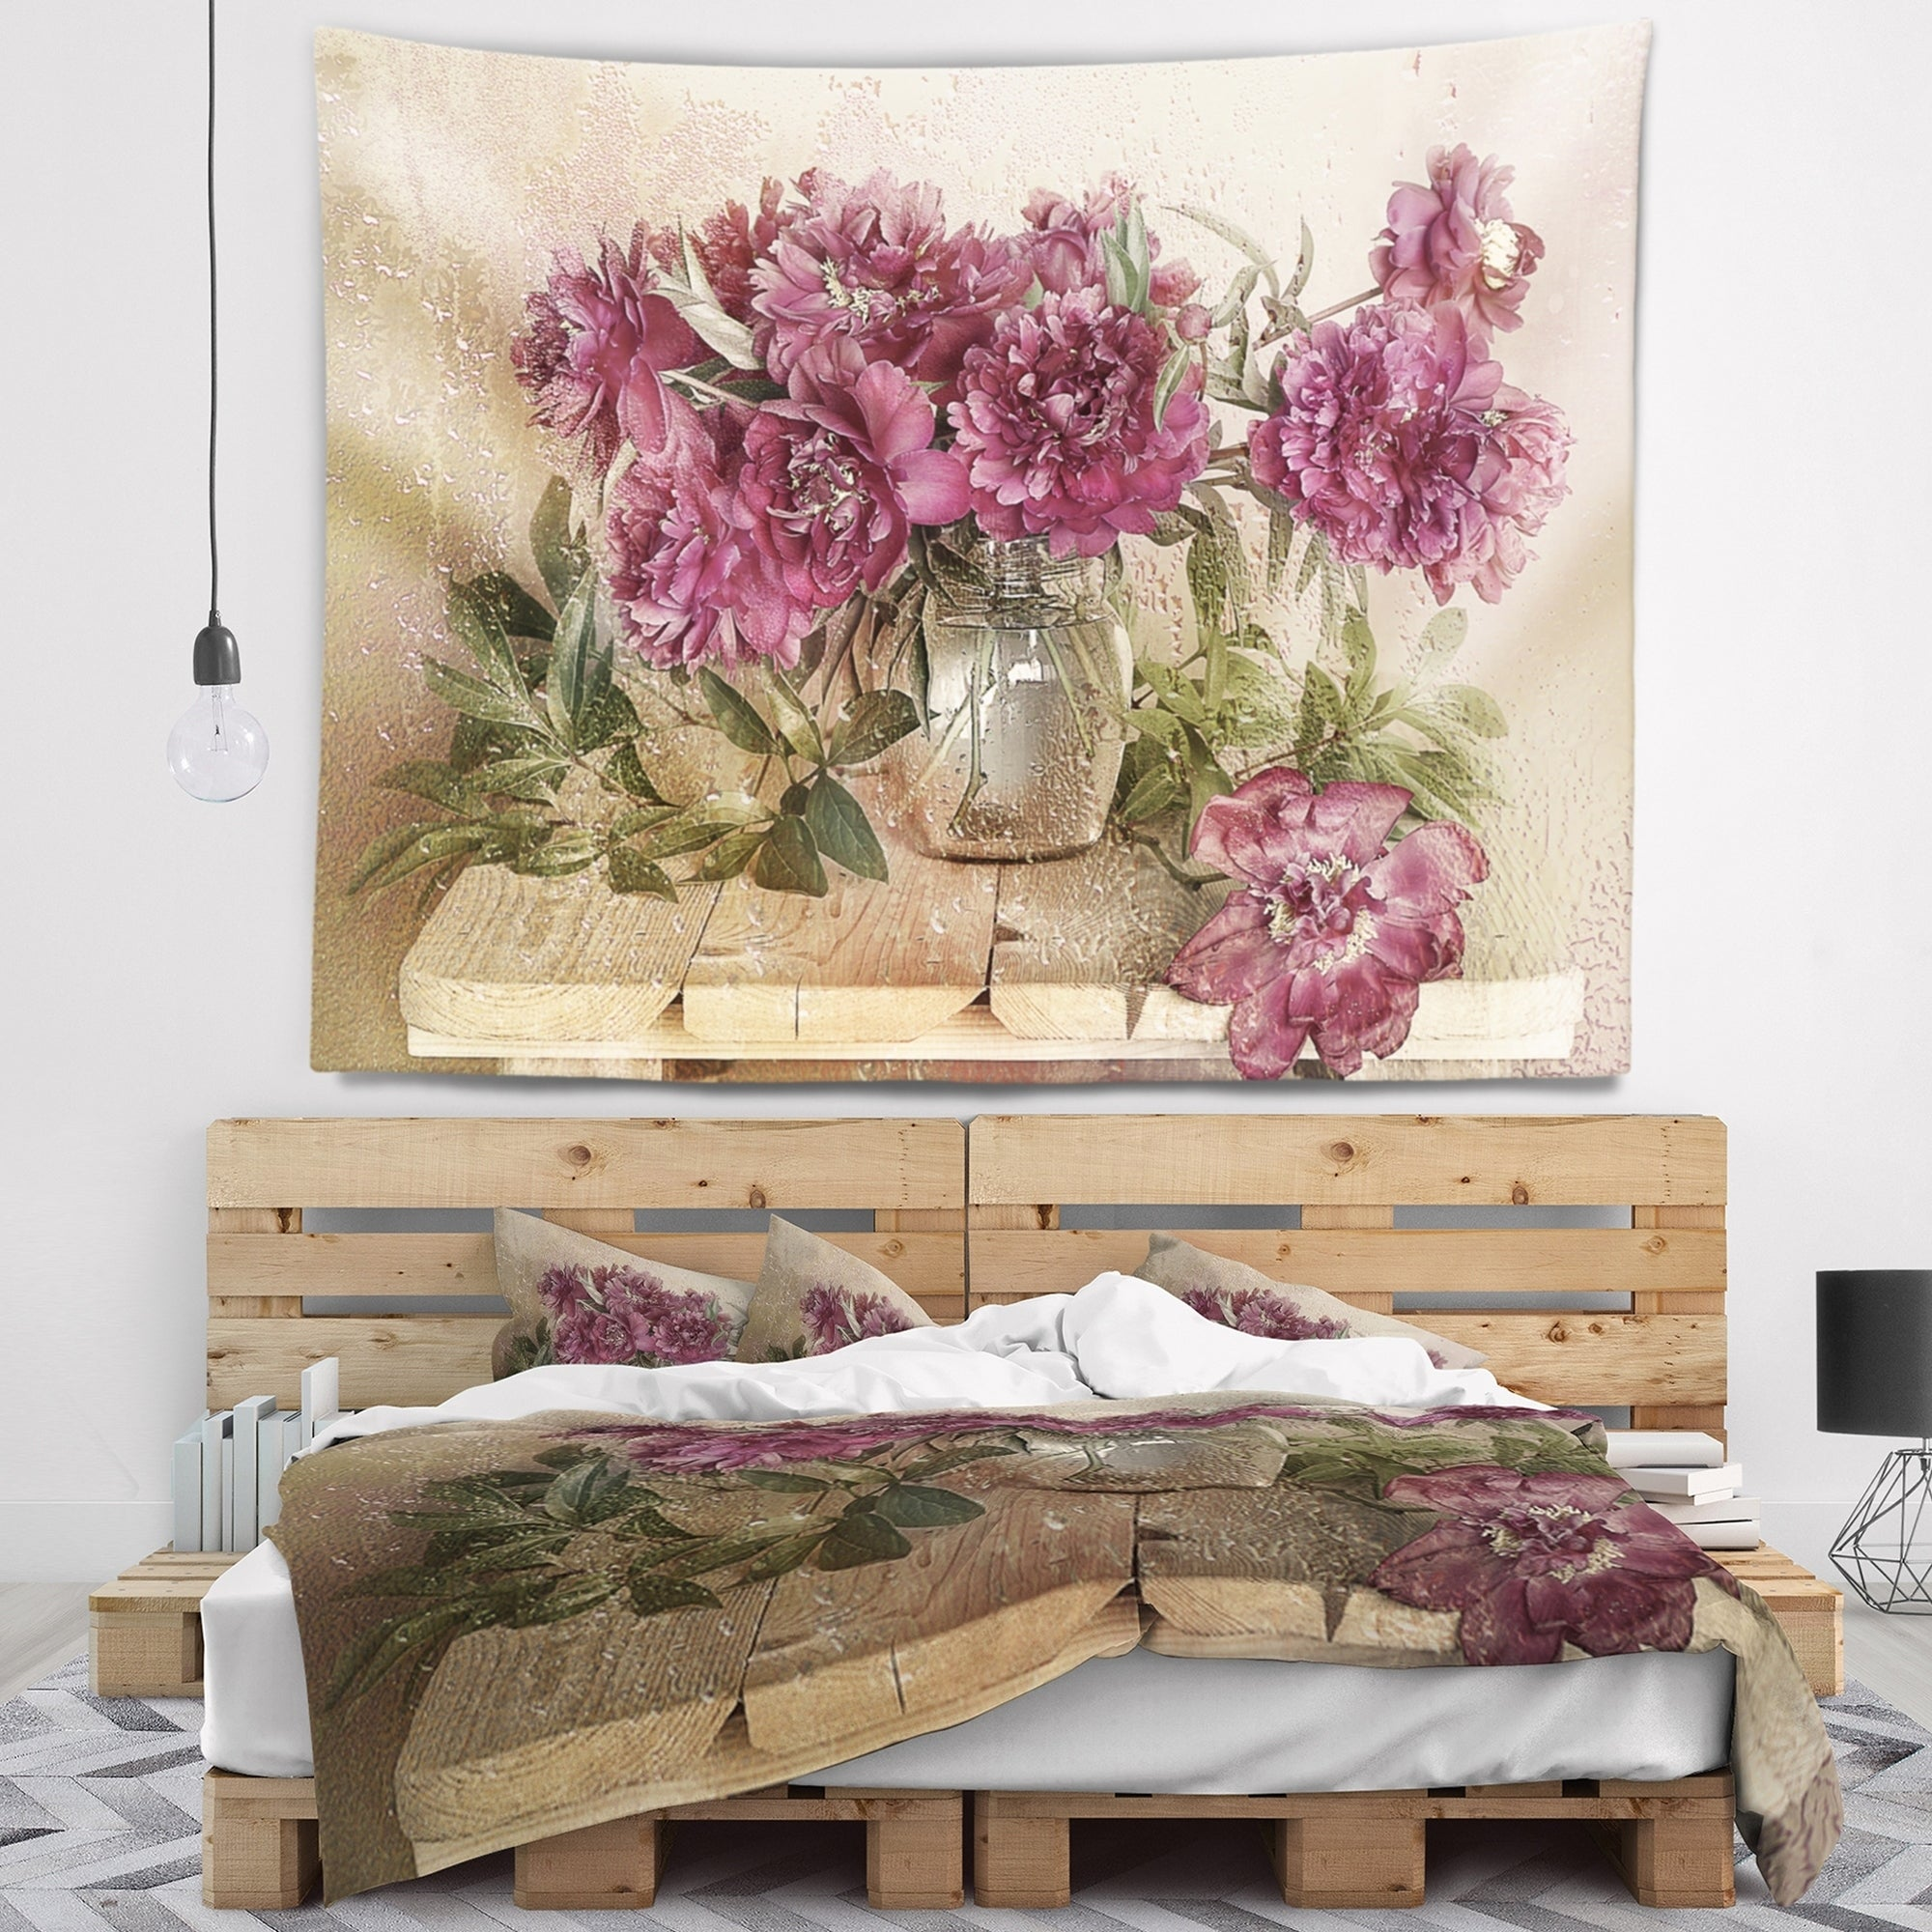 Designart \'Bouquet of Pink Peonies\' Floral Wall Tapestry | eBay